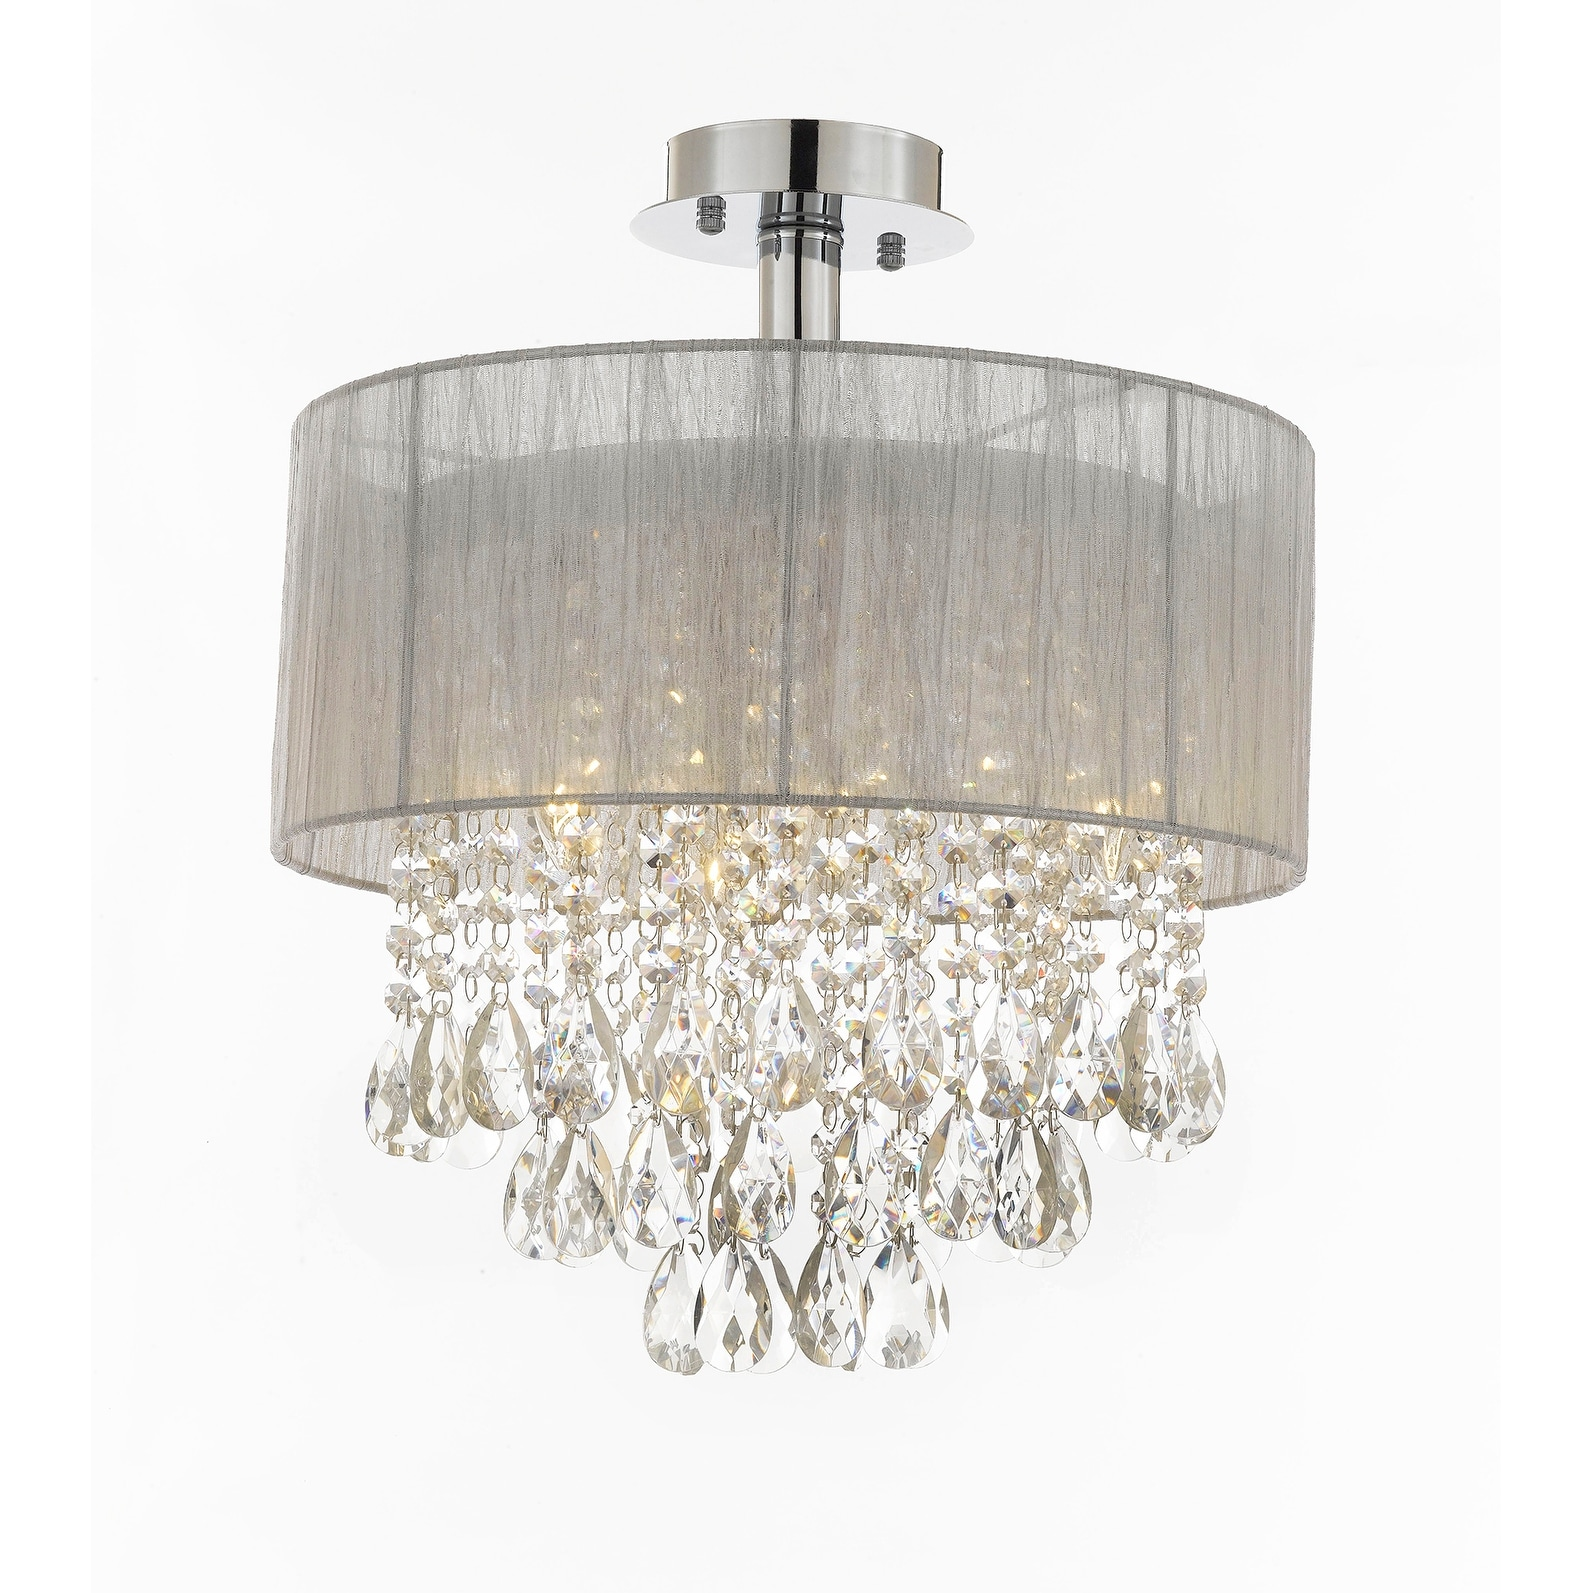 antique index lighting hinkley pendant hkhamptonpb nickel chandelier finish light hampton in elstead